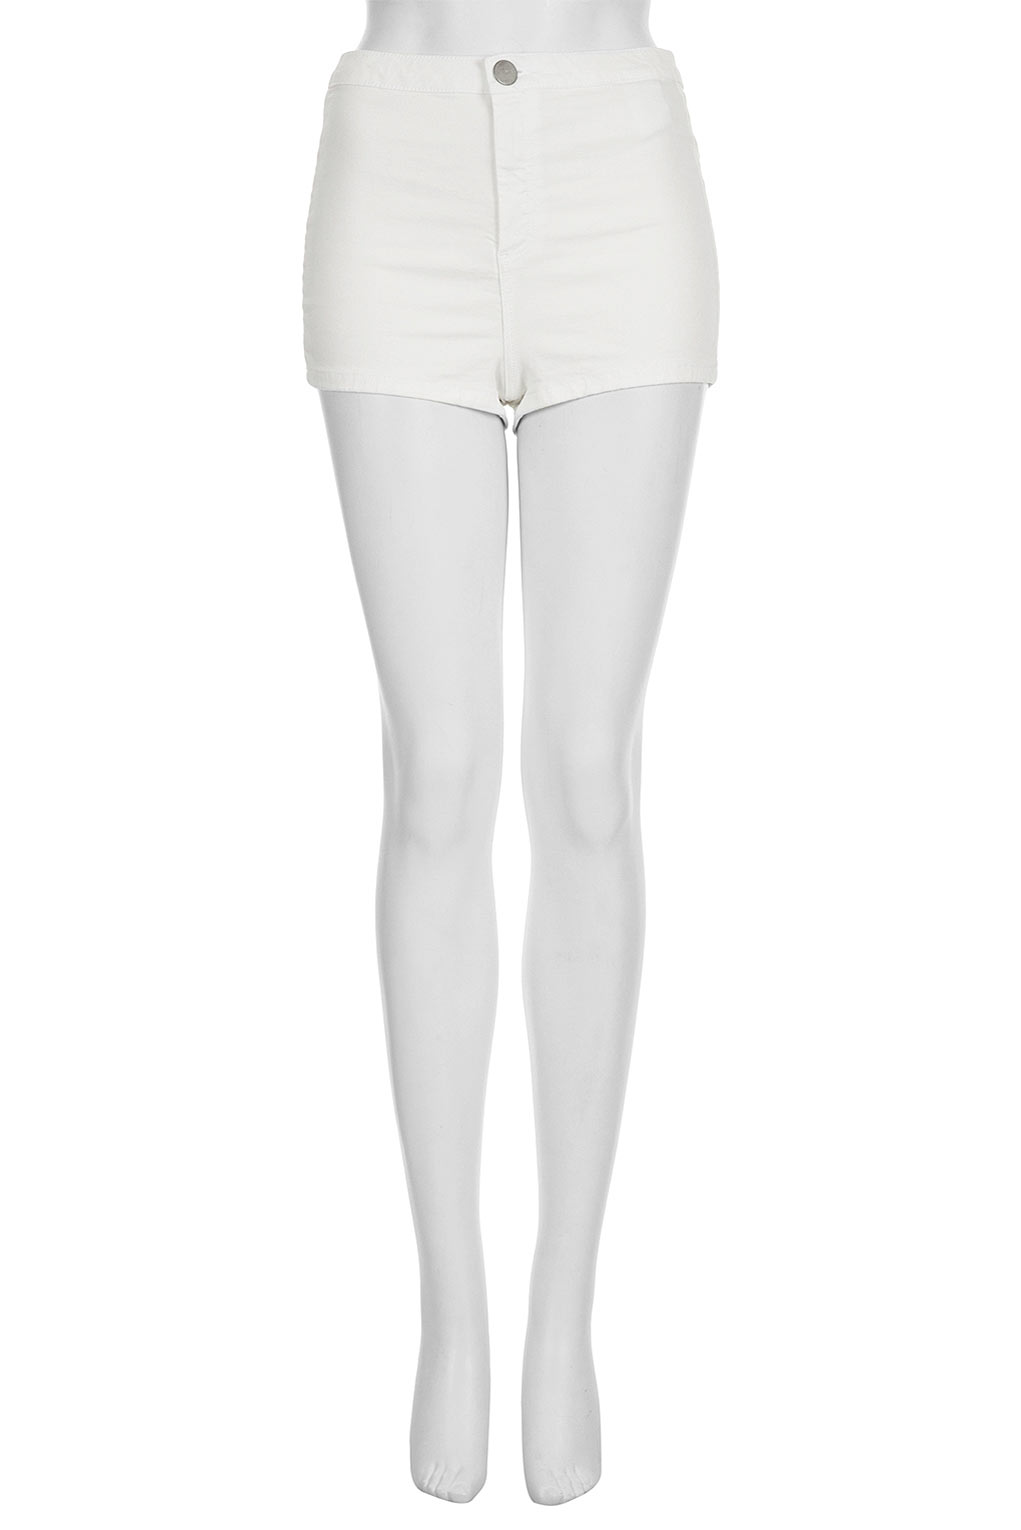 topshop 50s high waist hotpants in white lyst. Black Bedroom Furniture Sets. Home Design Ideas